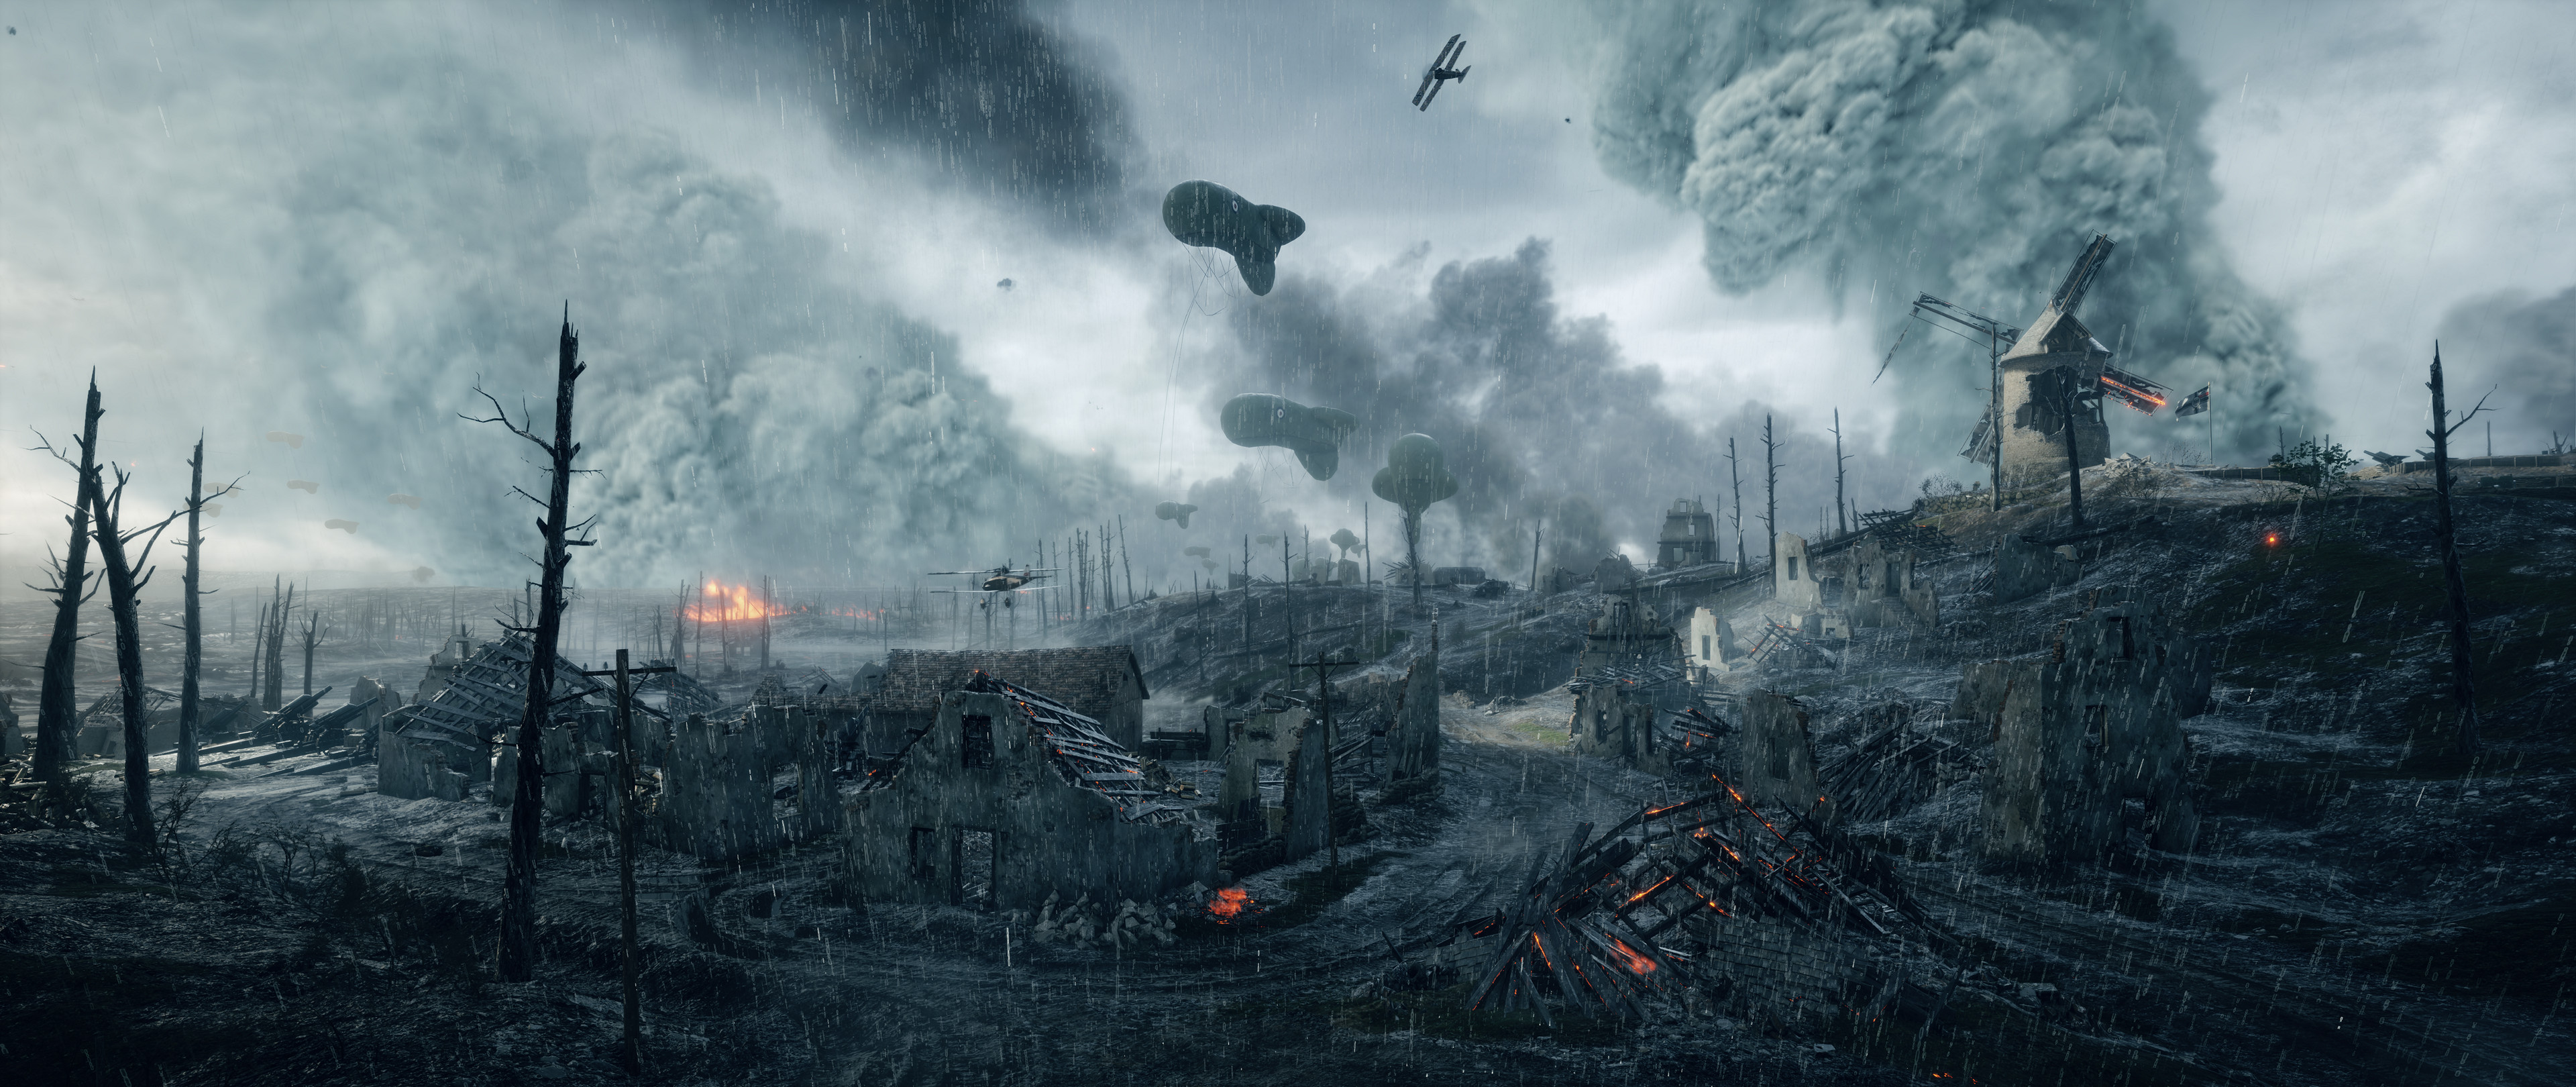 Battlefield 1 backgrounds pictures images - Best war wallpapers hd ...